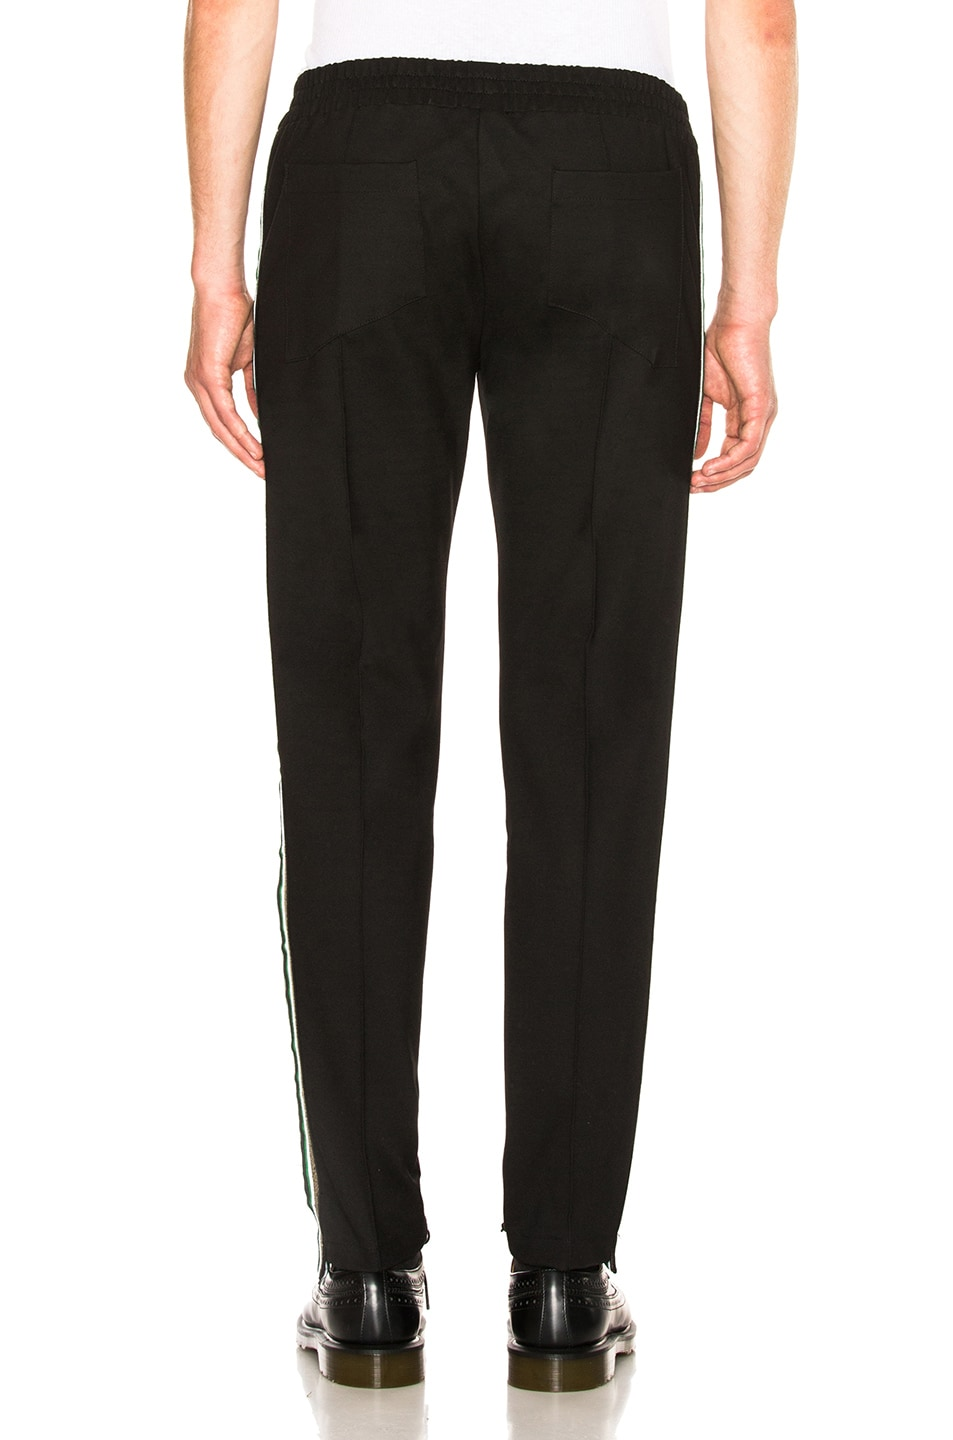 Image 4 of Rhude Traxedo Pant in Black & Green & Gold